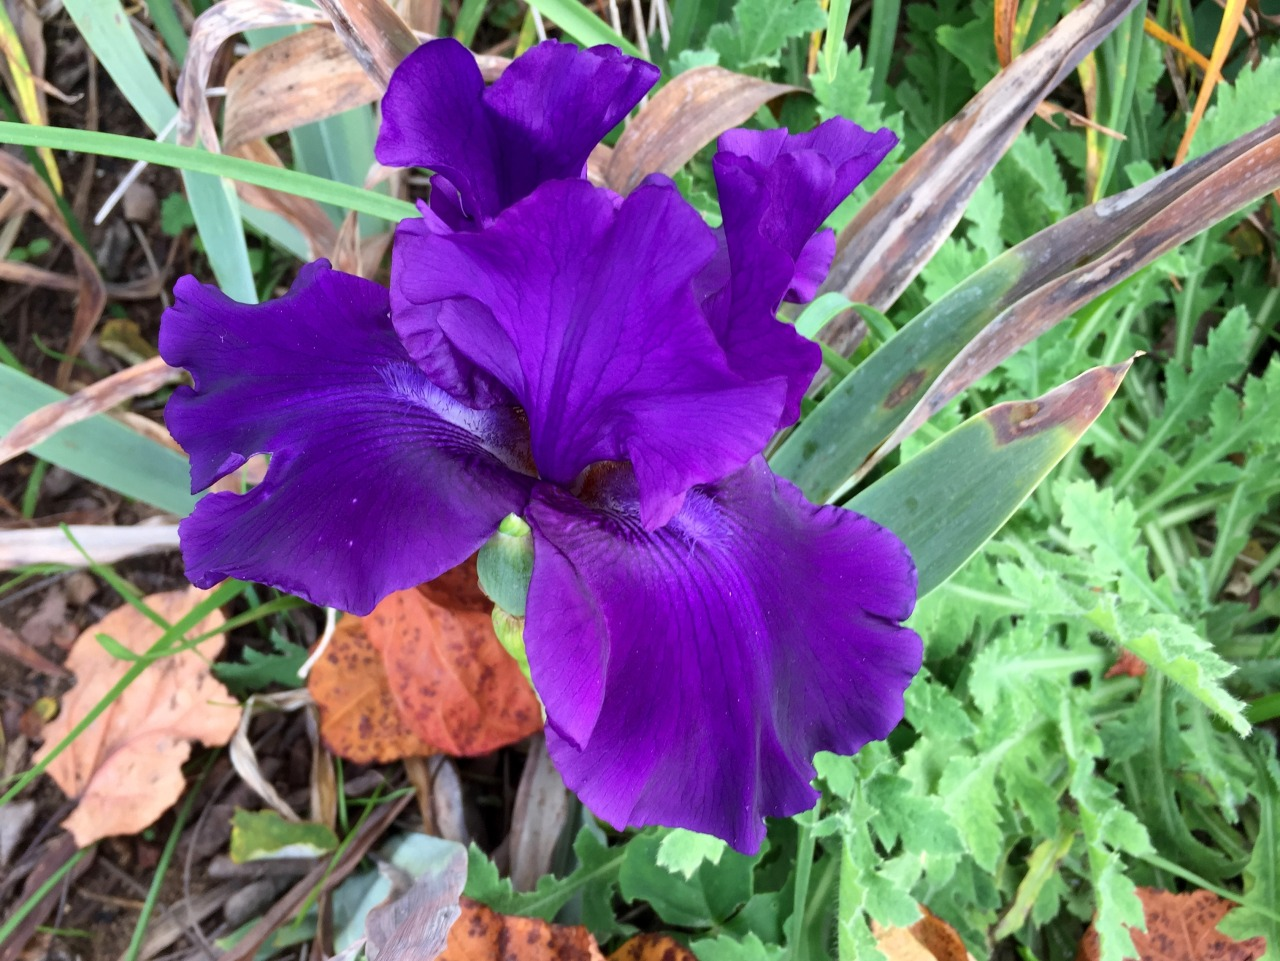 """An iris appears in the autumn debris.  """"A distinctive amount of a reasonable scarcity improves value greatly.""""   –Ernest Agyemang Yebnah"""